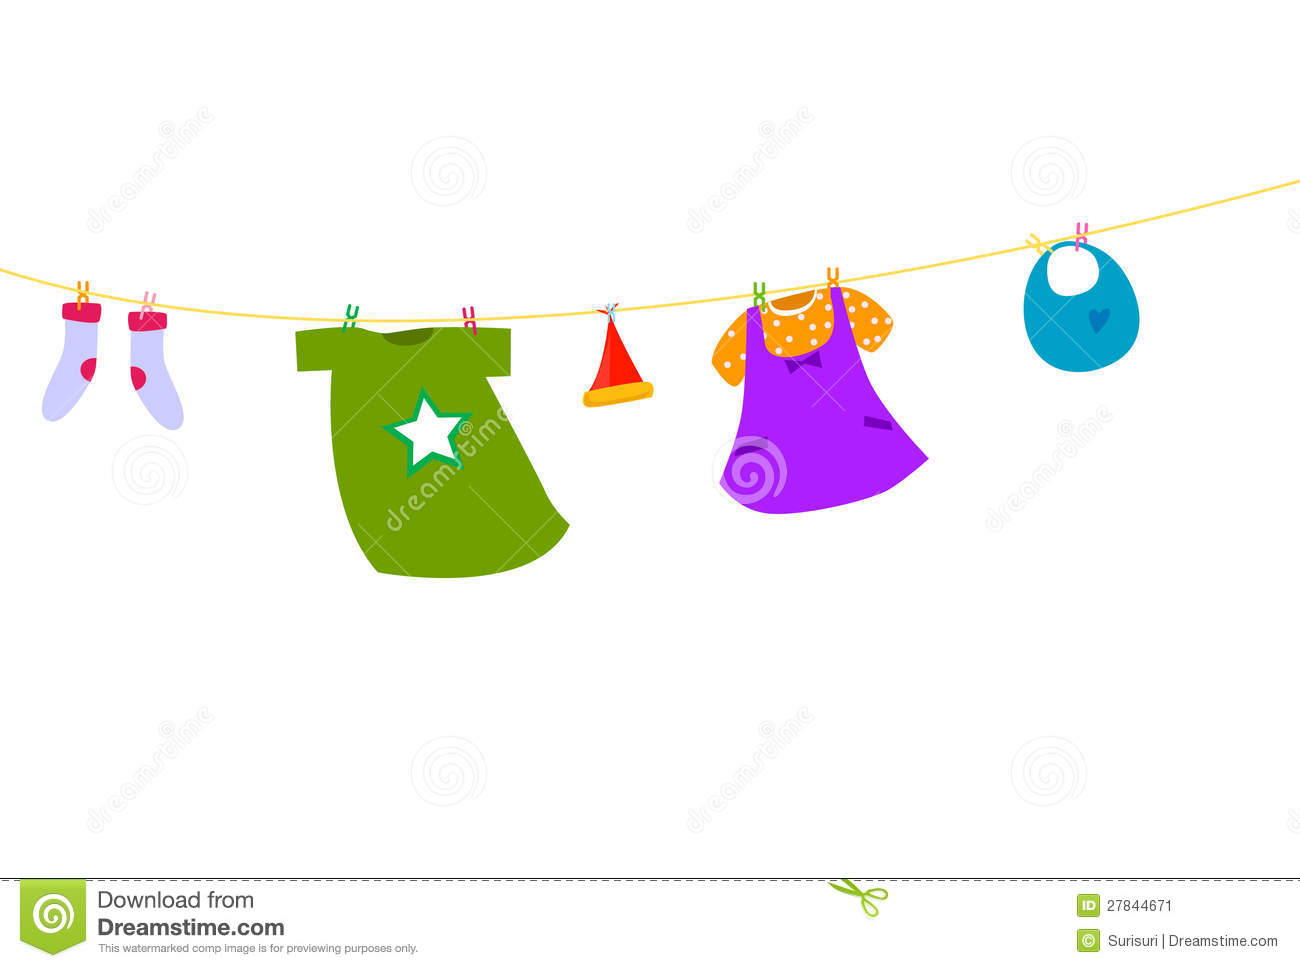 Baby Clothes On A Clothesline Stock Image - Image: 27844671